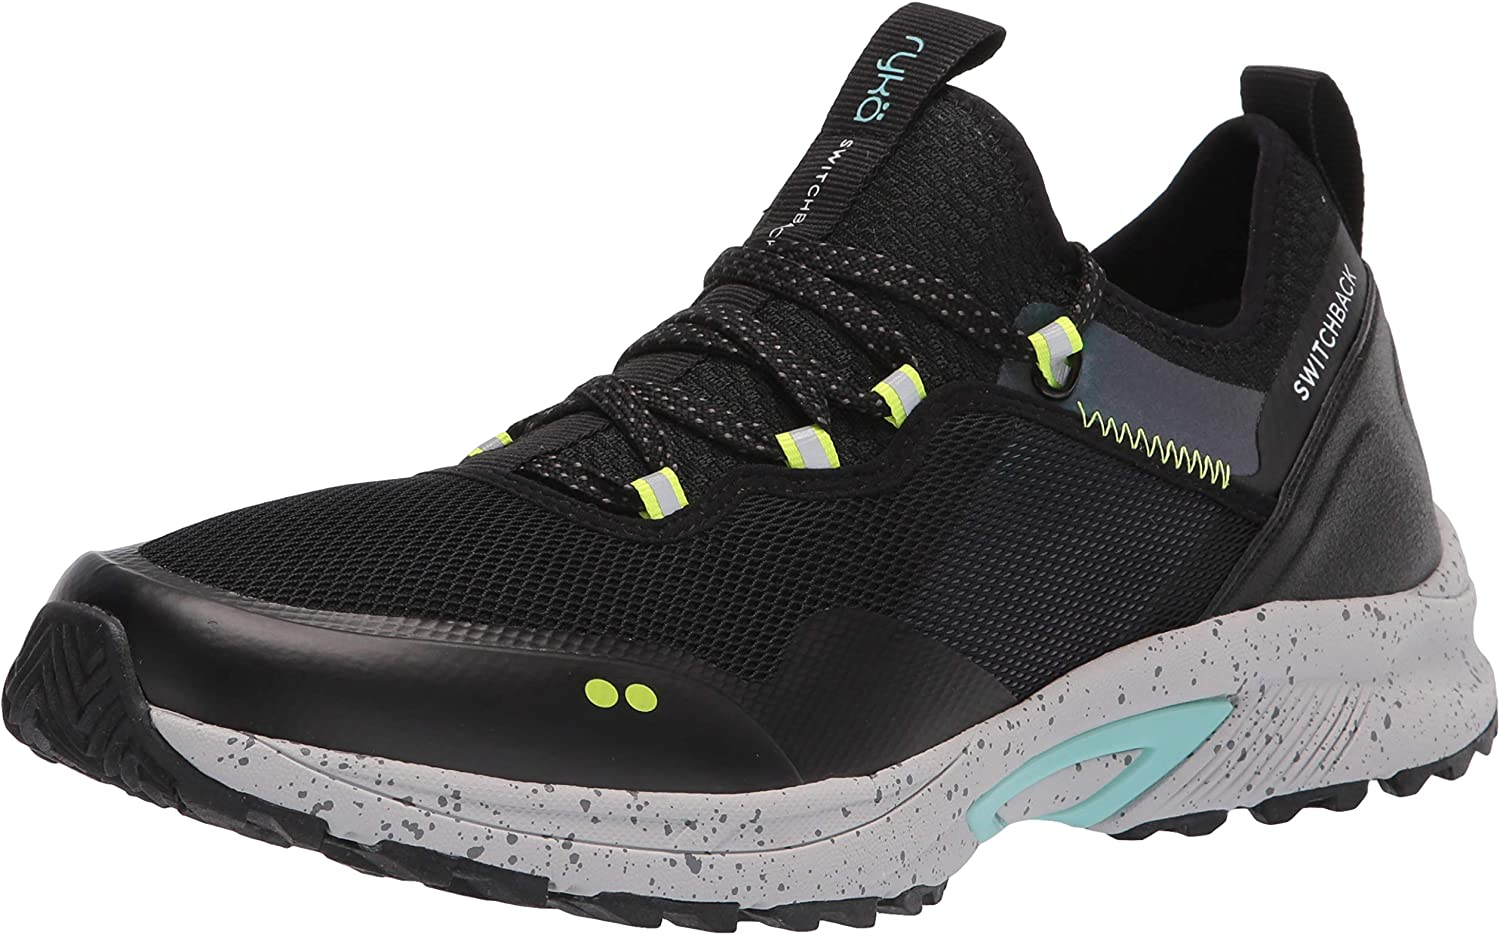 Sales for sale Ryka Max 73% OFF Women's Oxford Switchback